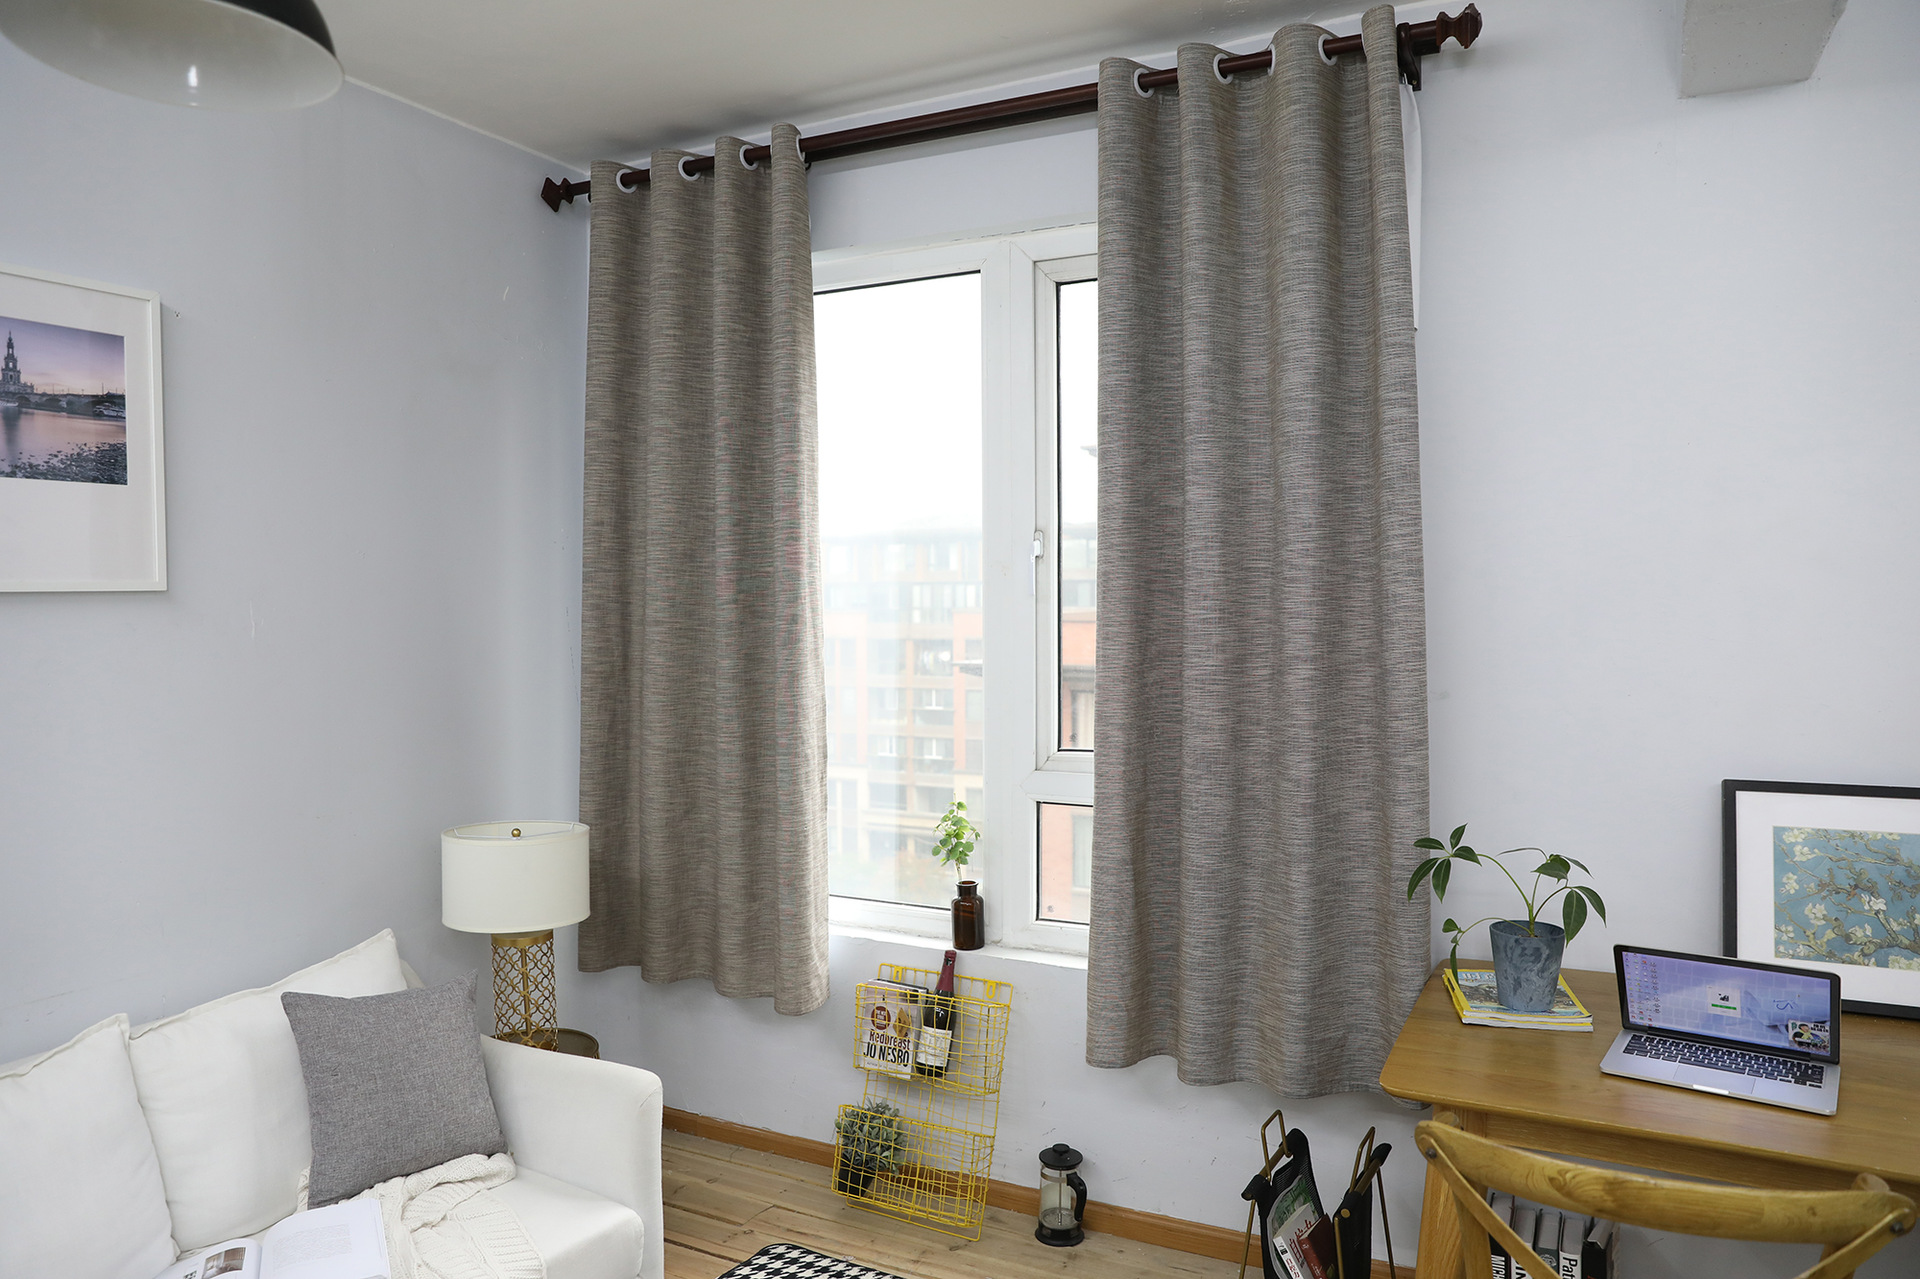 2019 Pinstripe Cotton Curtains For Living Room Blinds Bedroom Bay Window Semi Shading Finished Drapes Tube Curtain 140x215cm 55x85in From Stunning88